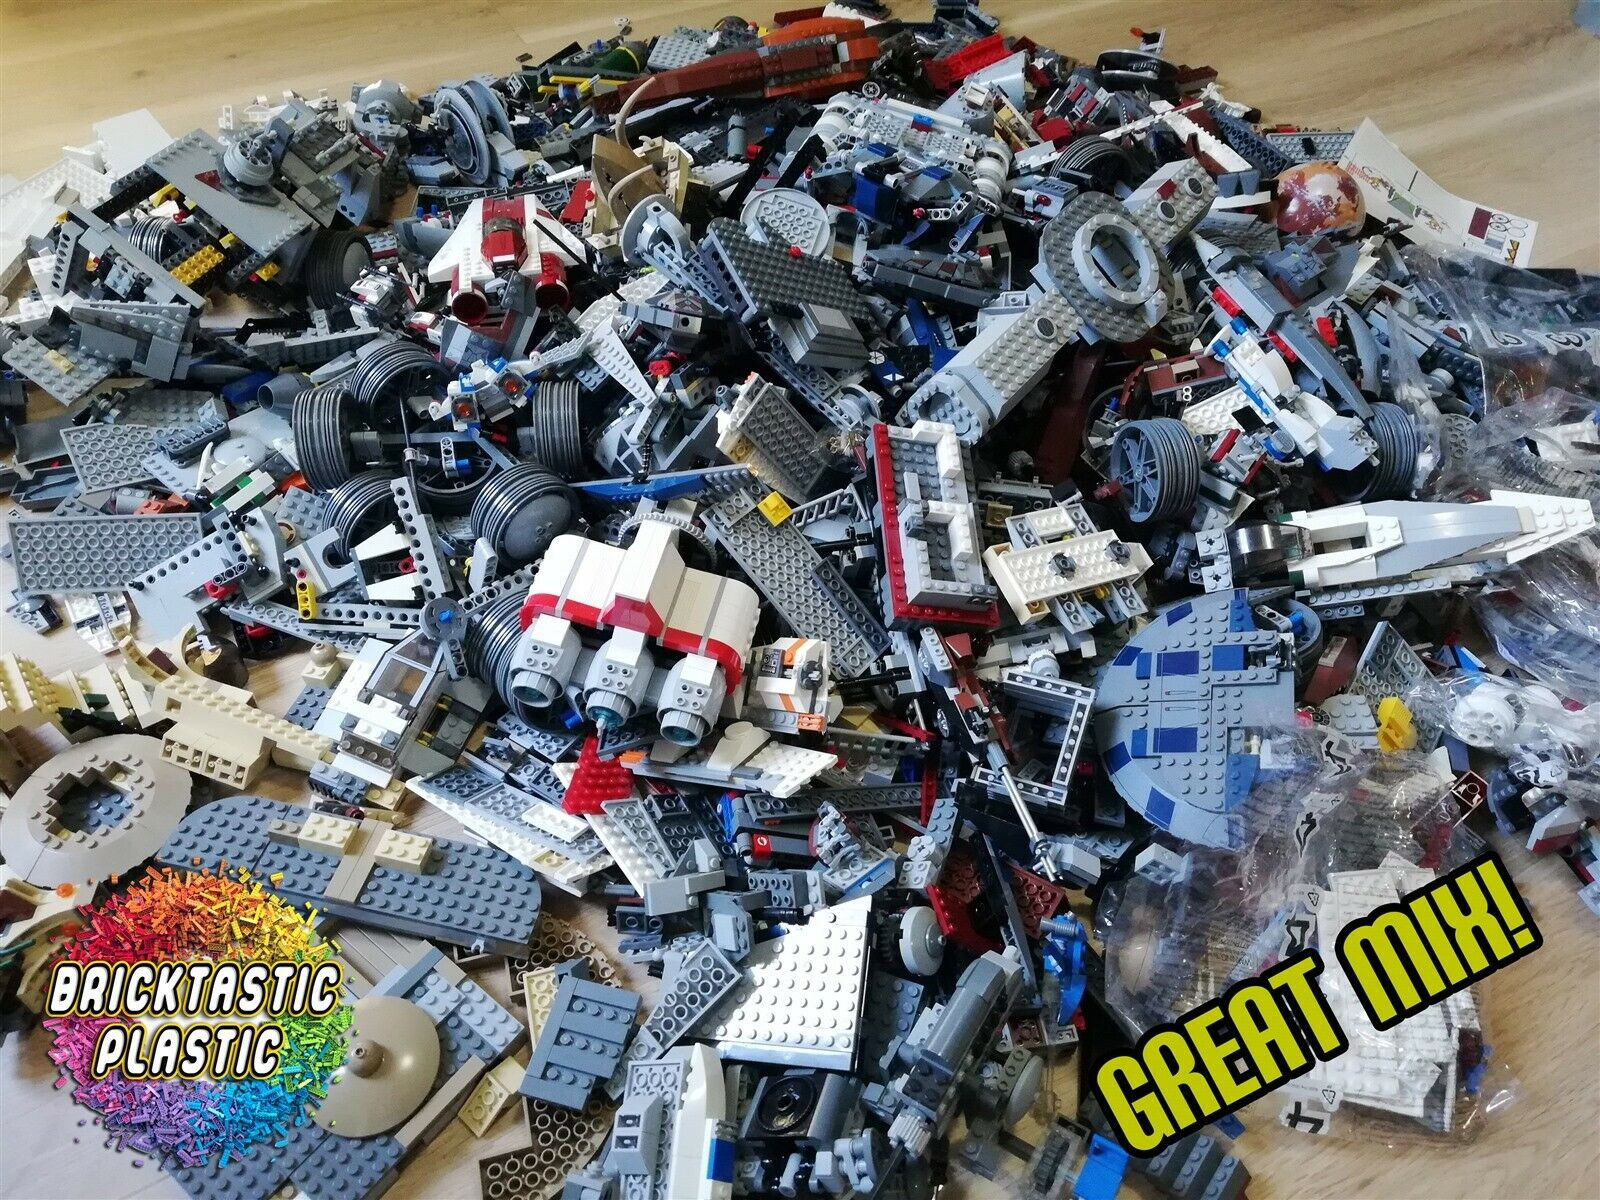 10 KG LEGO CREATIVITY PACKS HAND SORTED x8500pcs BEST VALUE BULK LOT